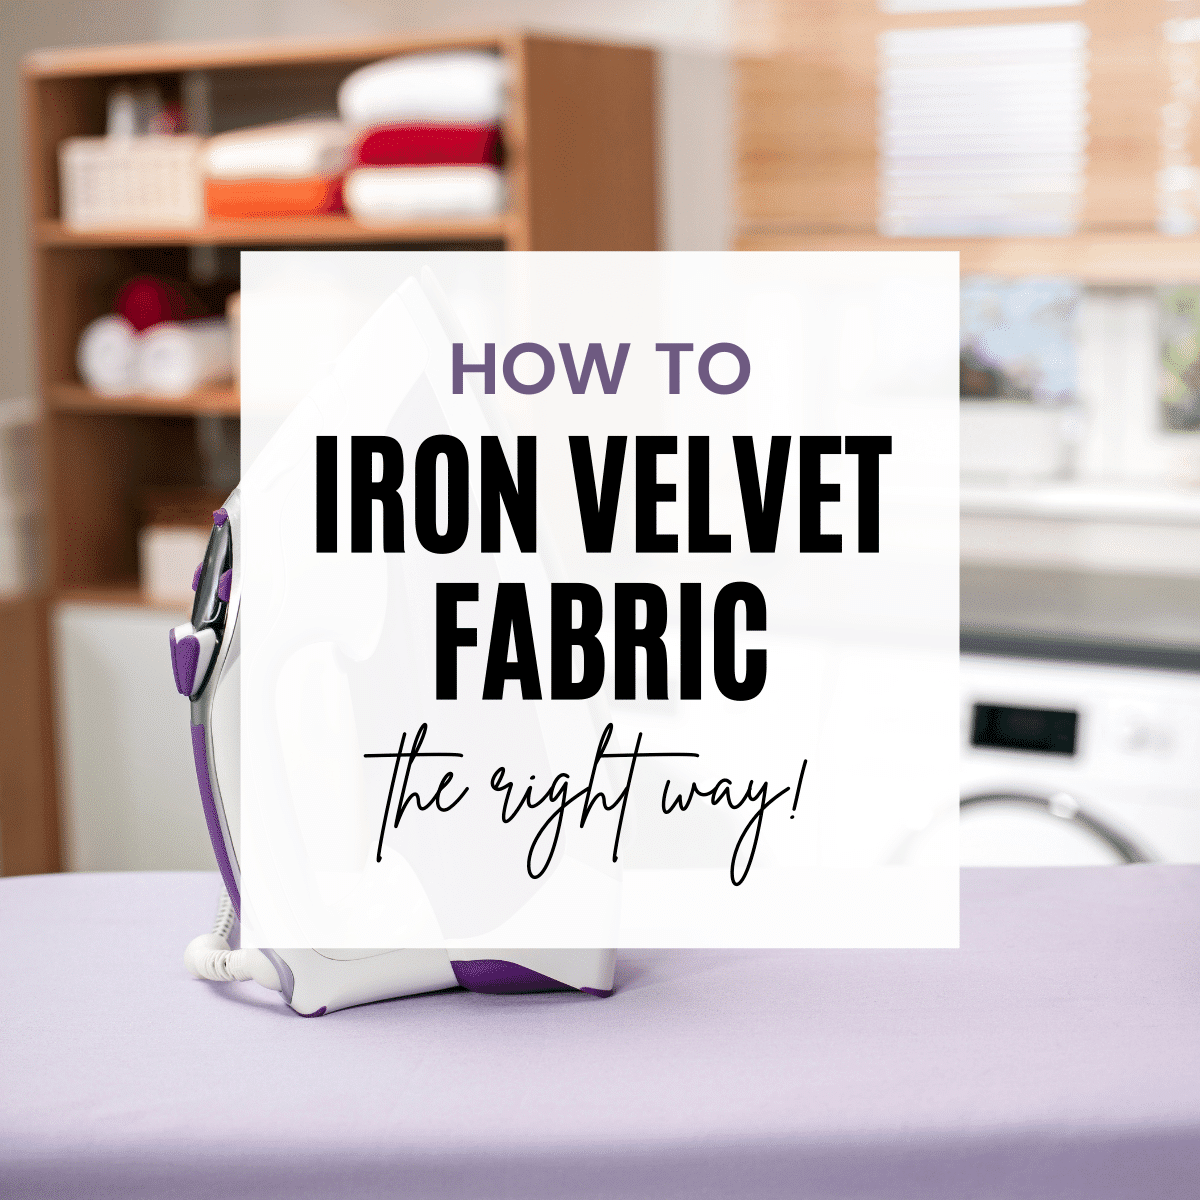 How to Iron Velvet Fabric Successfully (And Can You?)